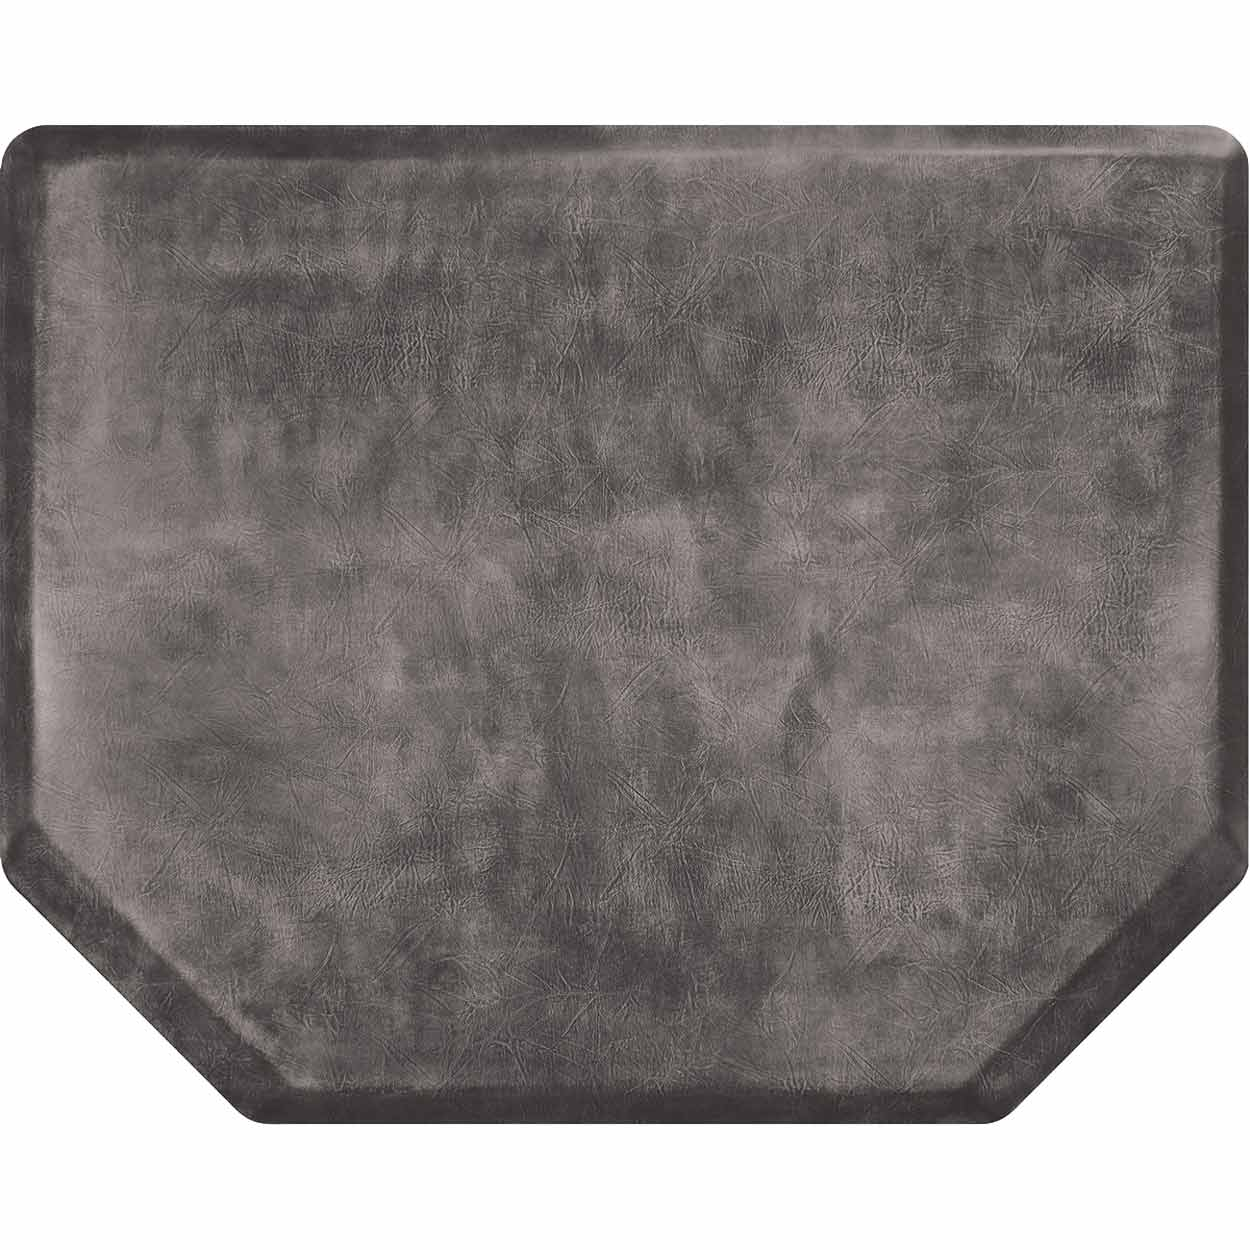 4x5 Vintage Leather Hex Salon Mat Without Chair Impression alternative product image 1